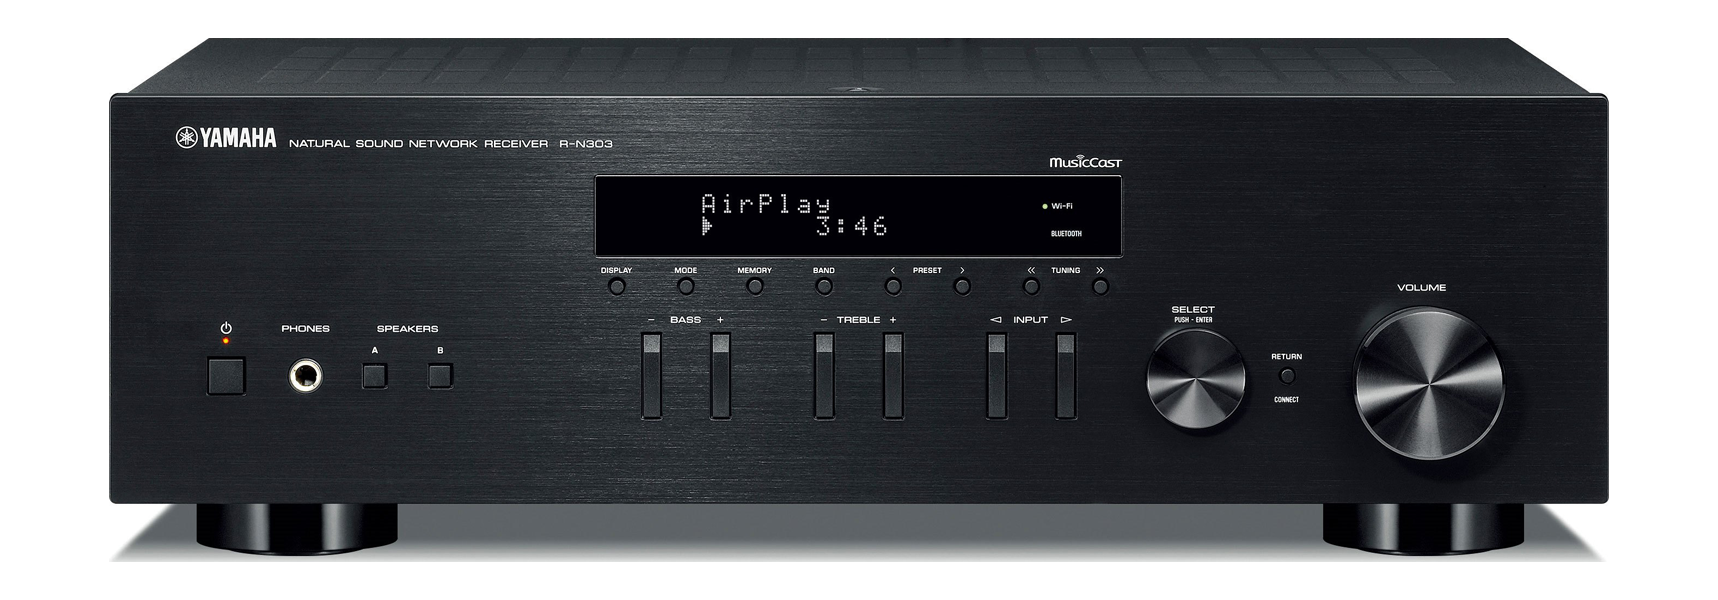 R-N303 2-Ch x 100 Watts Networking Stereo Receiver